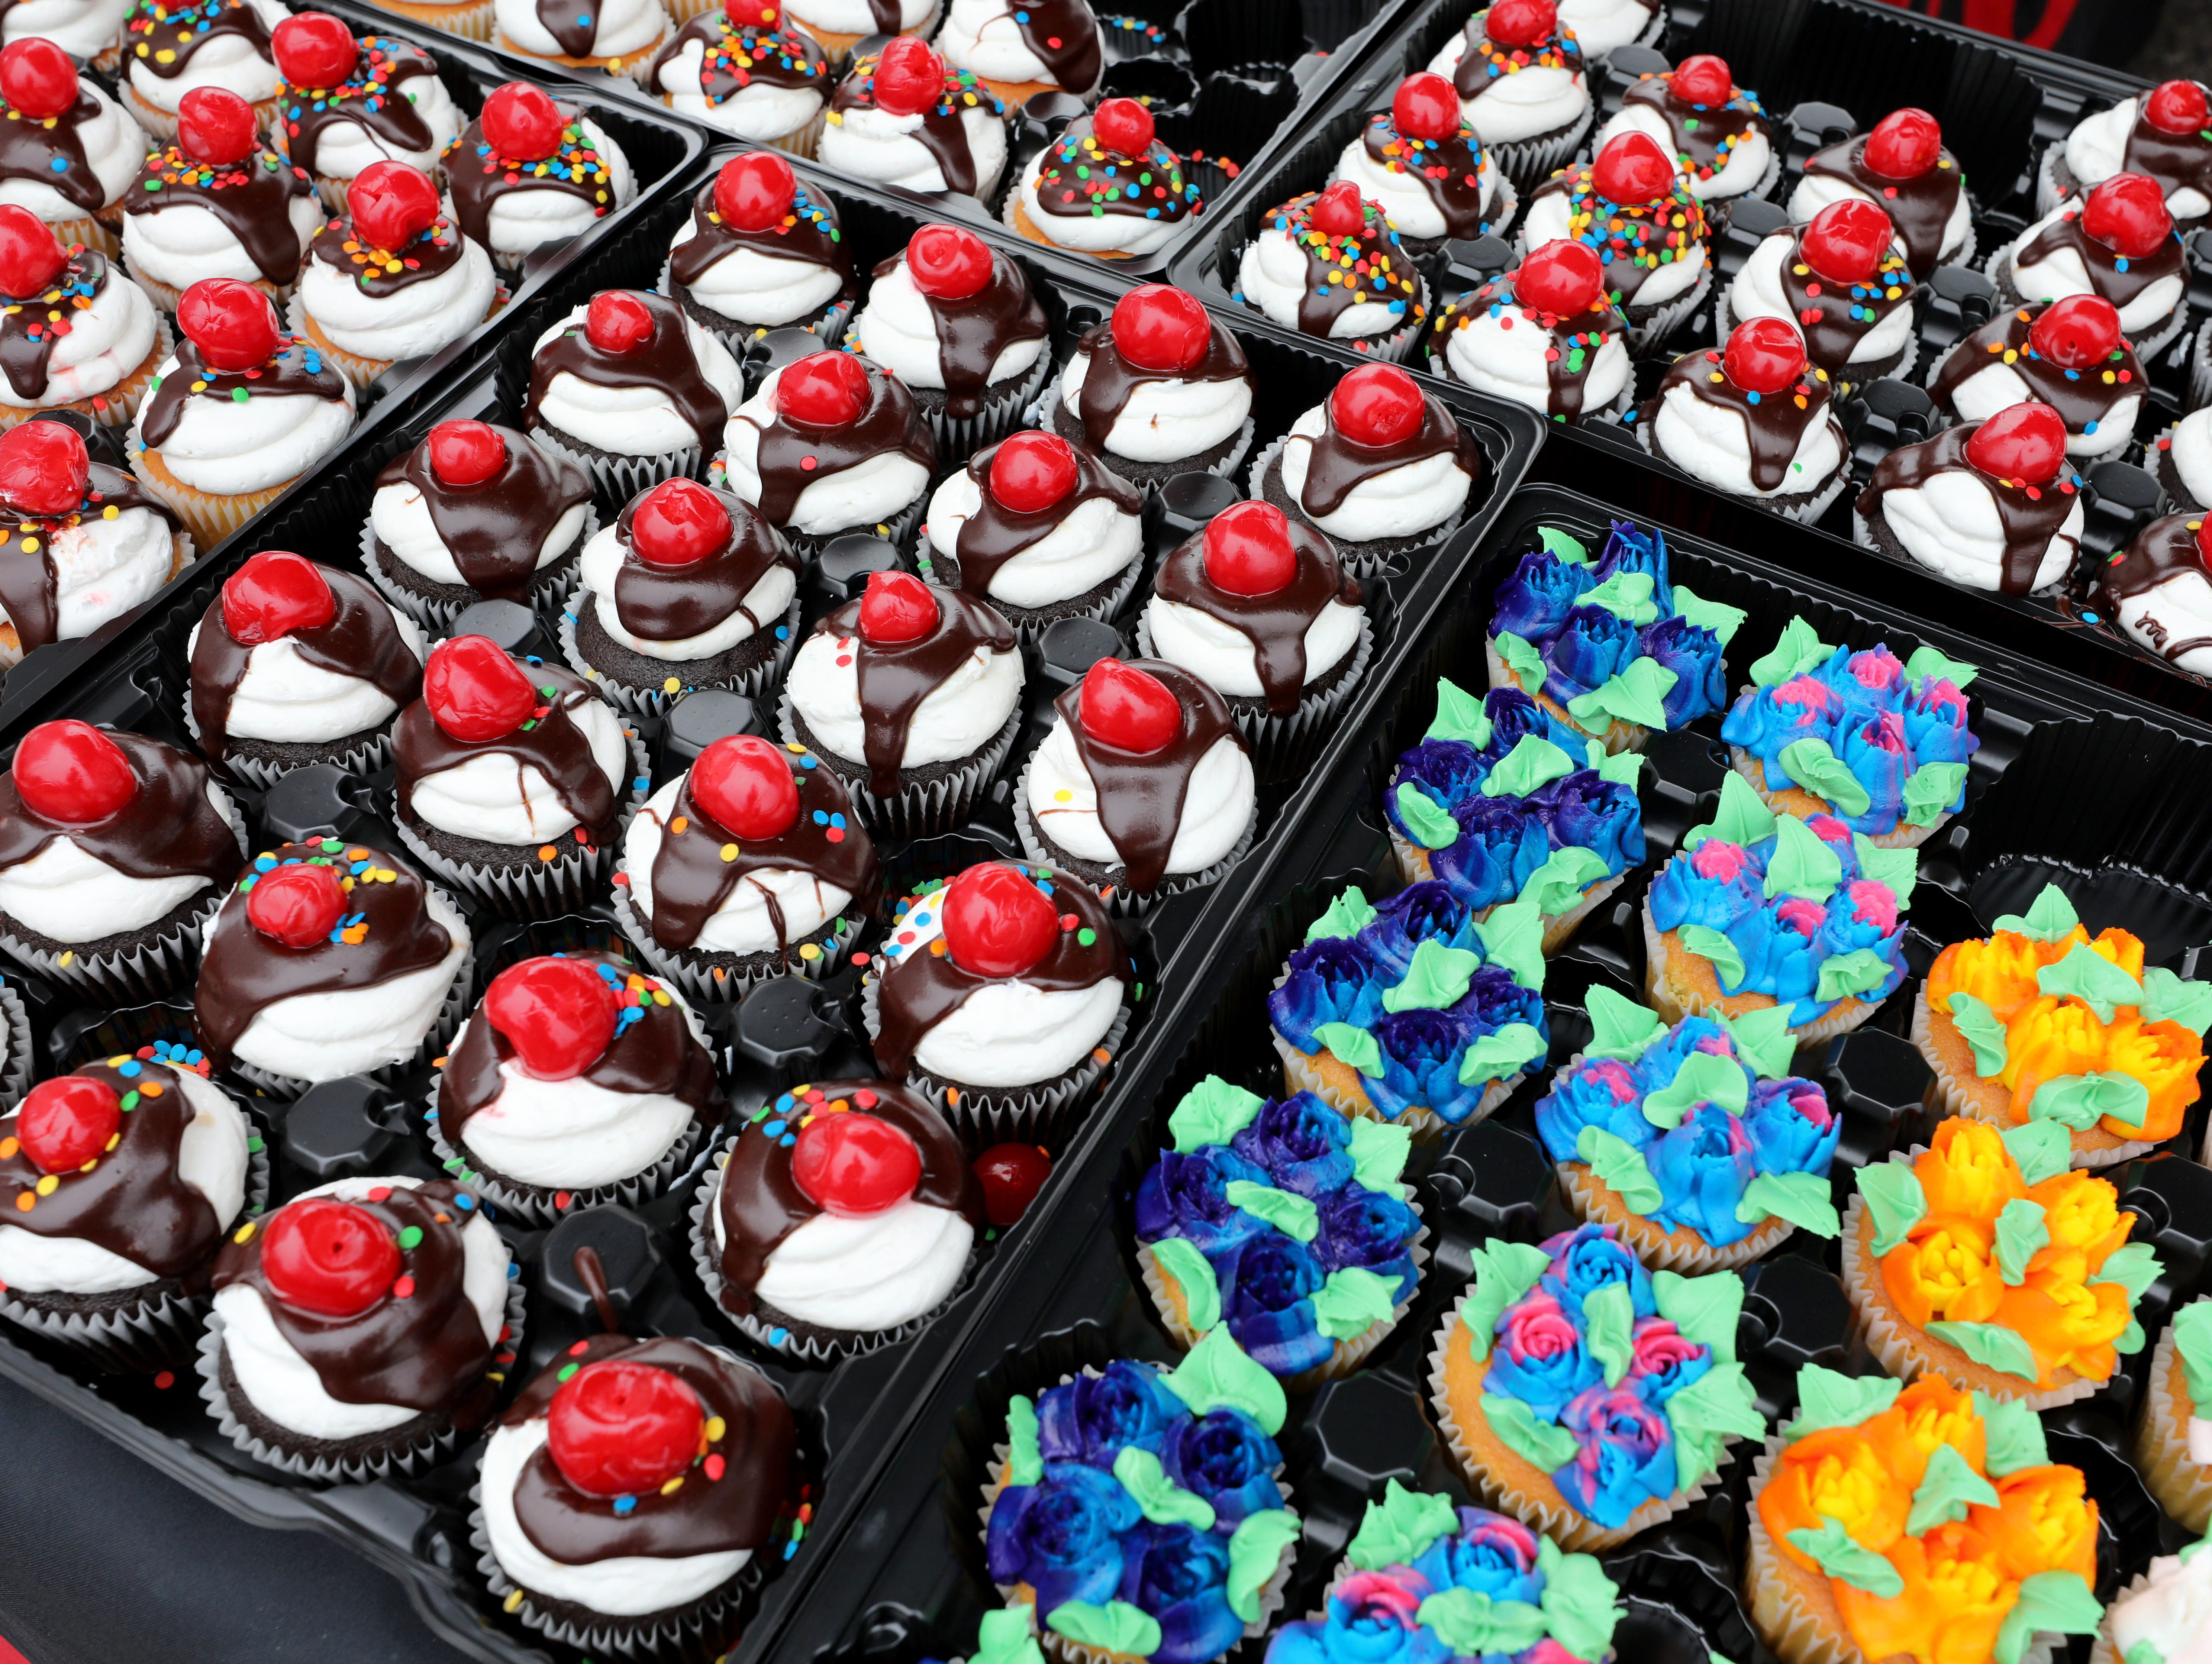 Cupcake detail from the Tops Friendly Market cupcake booth during the K104.7 Cupcake Festival at the Stormville Airport, May 4, 2019.